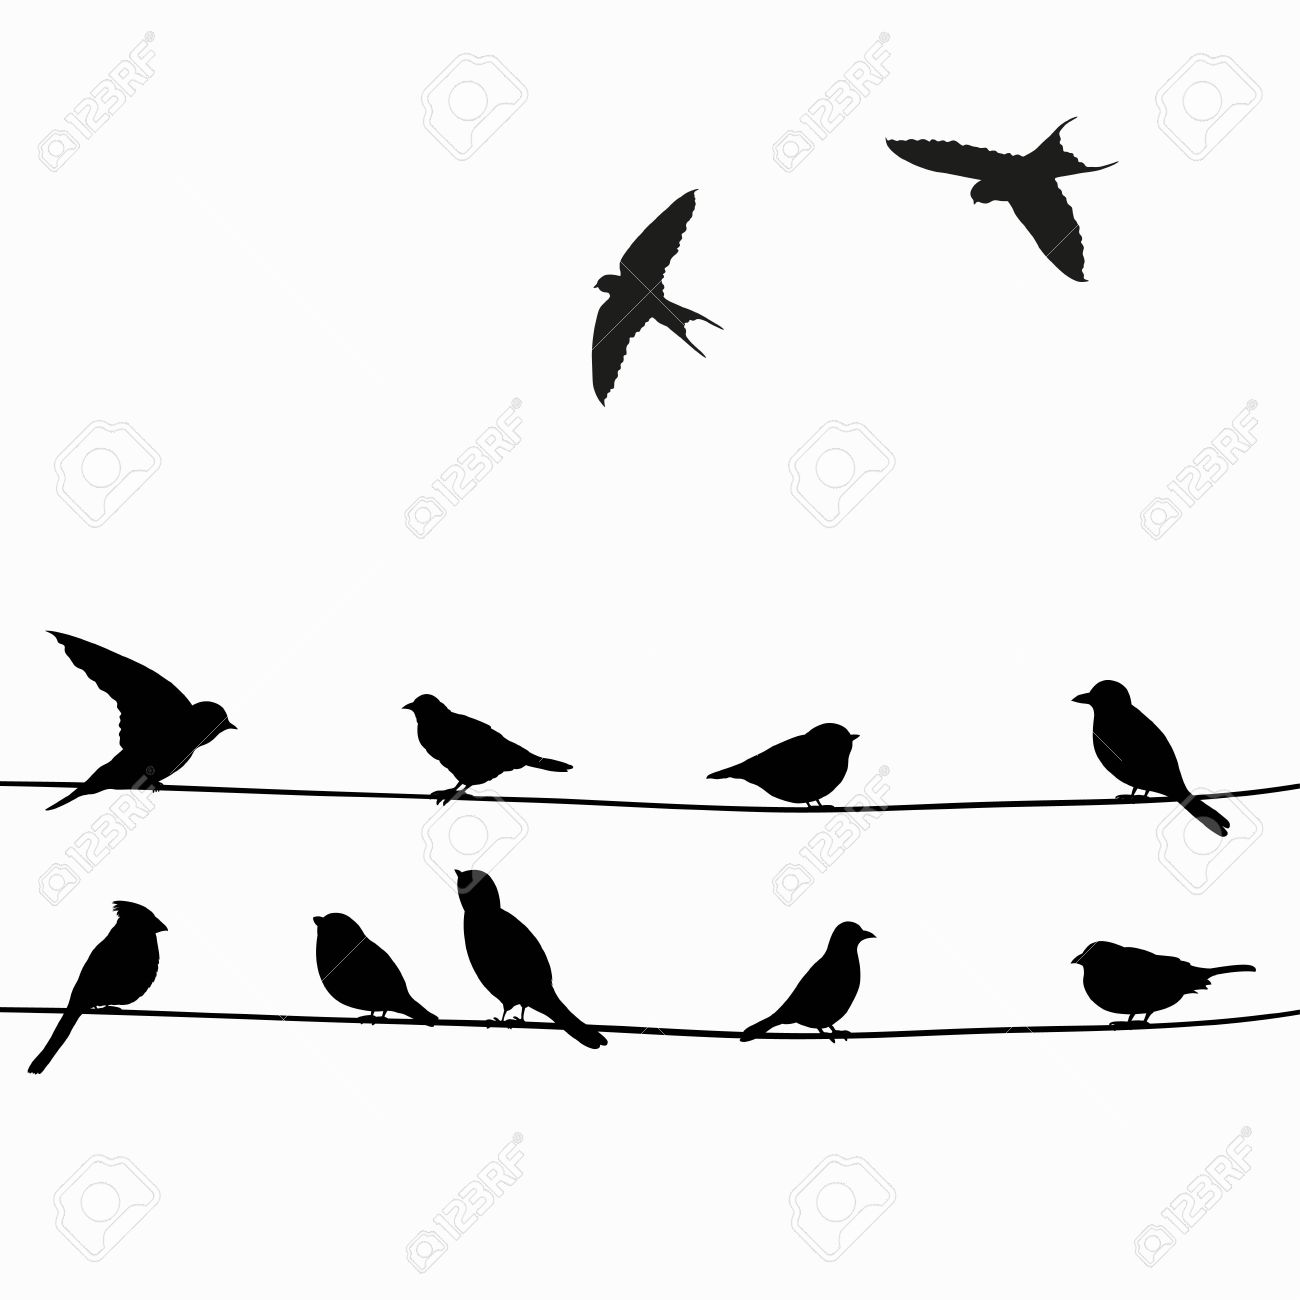 Cute Black Birds On A Wire Royalty Free Cliparts, Vectors, And Stock ...